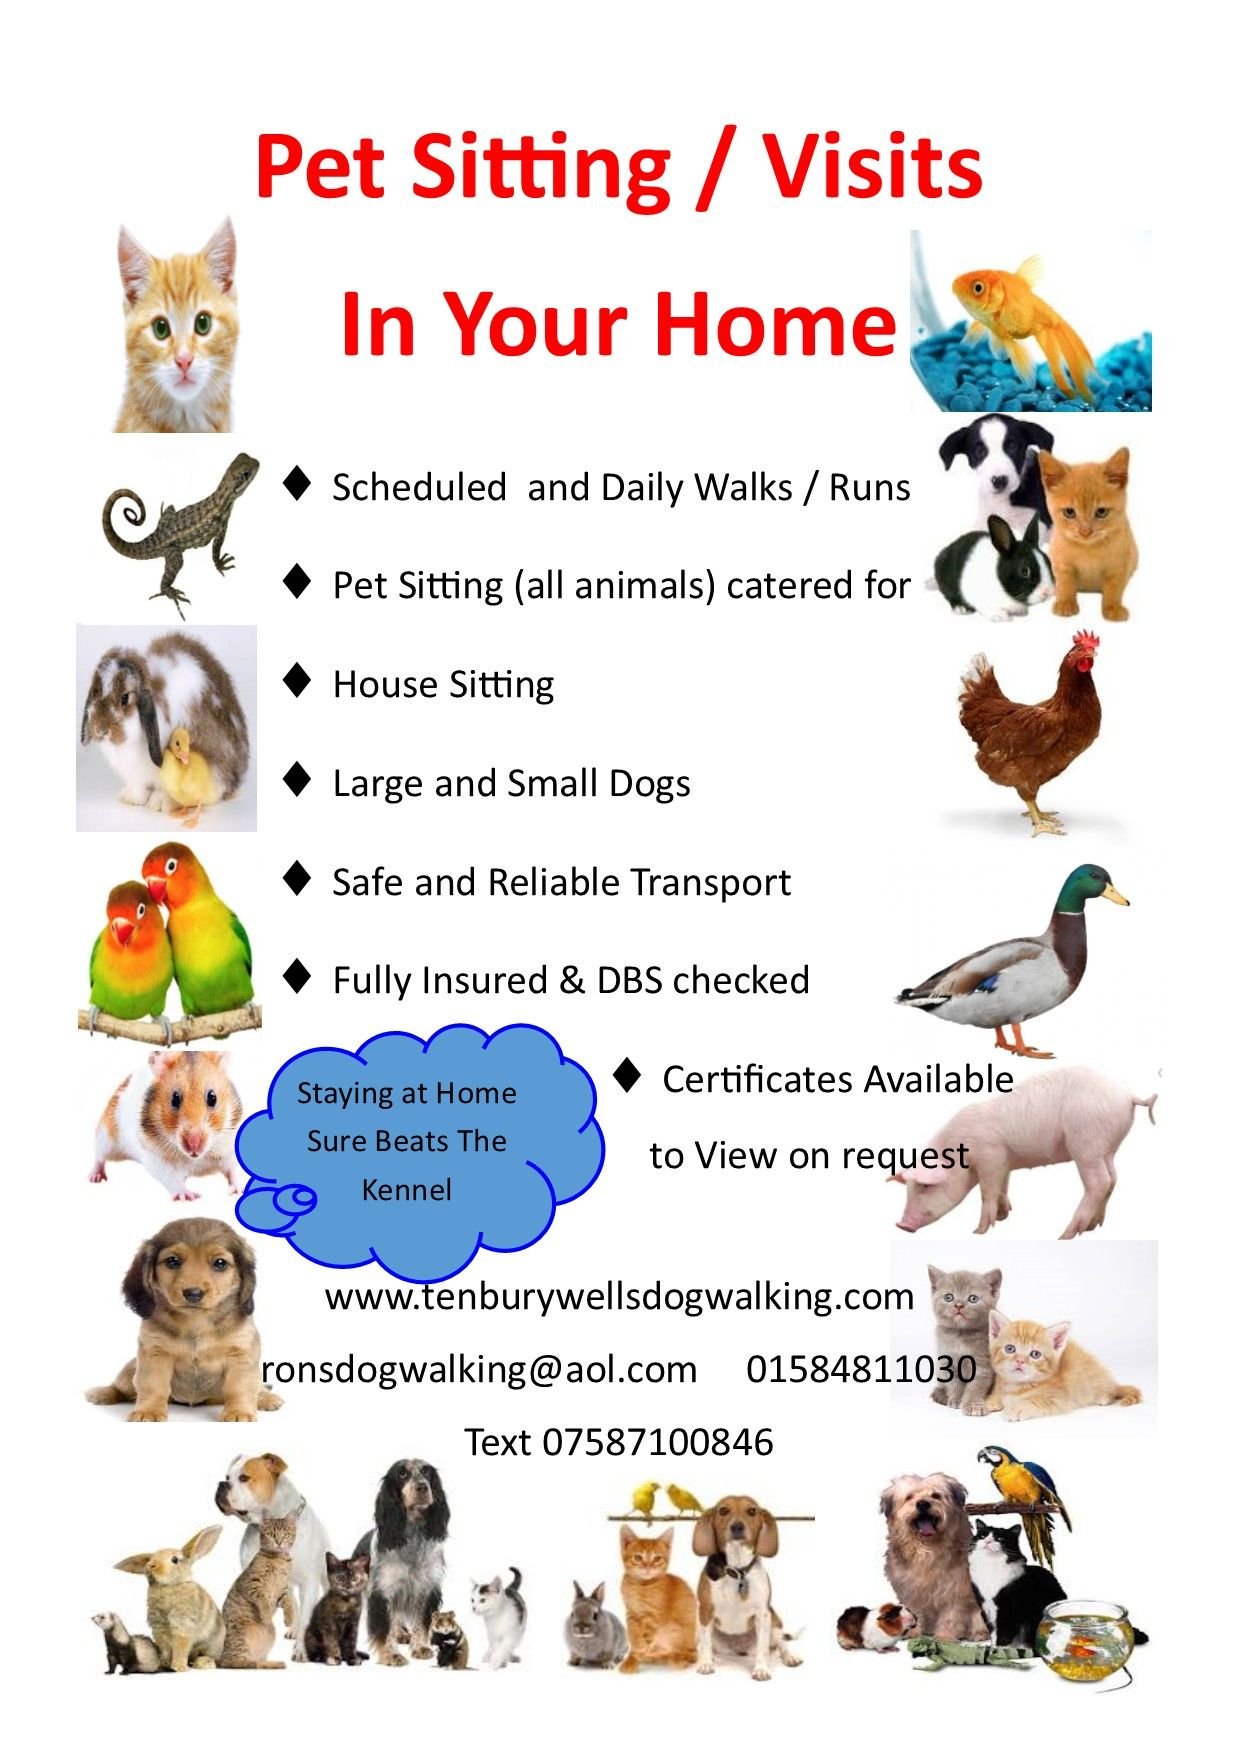 Pin on Tenbury Wells Dog Walking & Pet Care Services